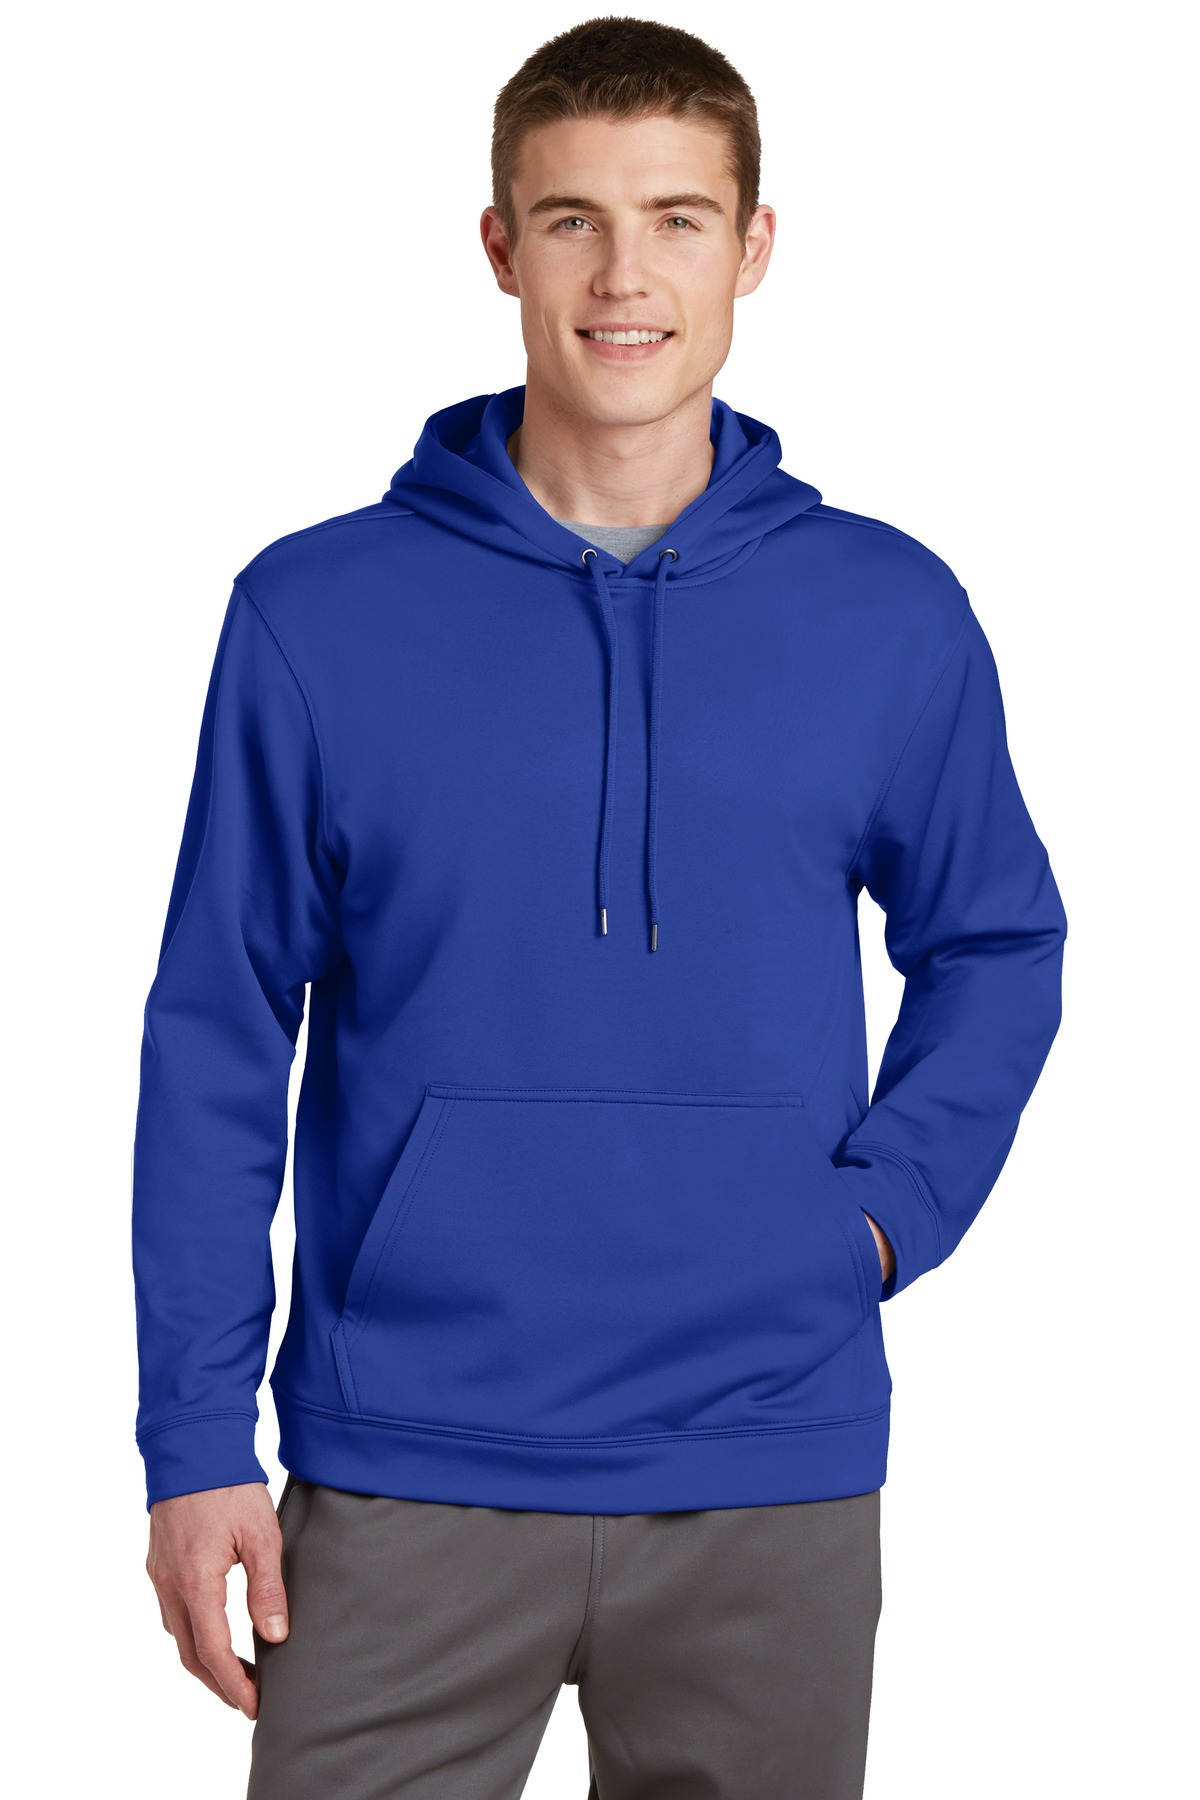 Sport-Tek ®  Sport-Wick ®  Fleece Hooded Pullover.  F244 - True Royal